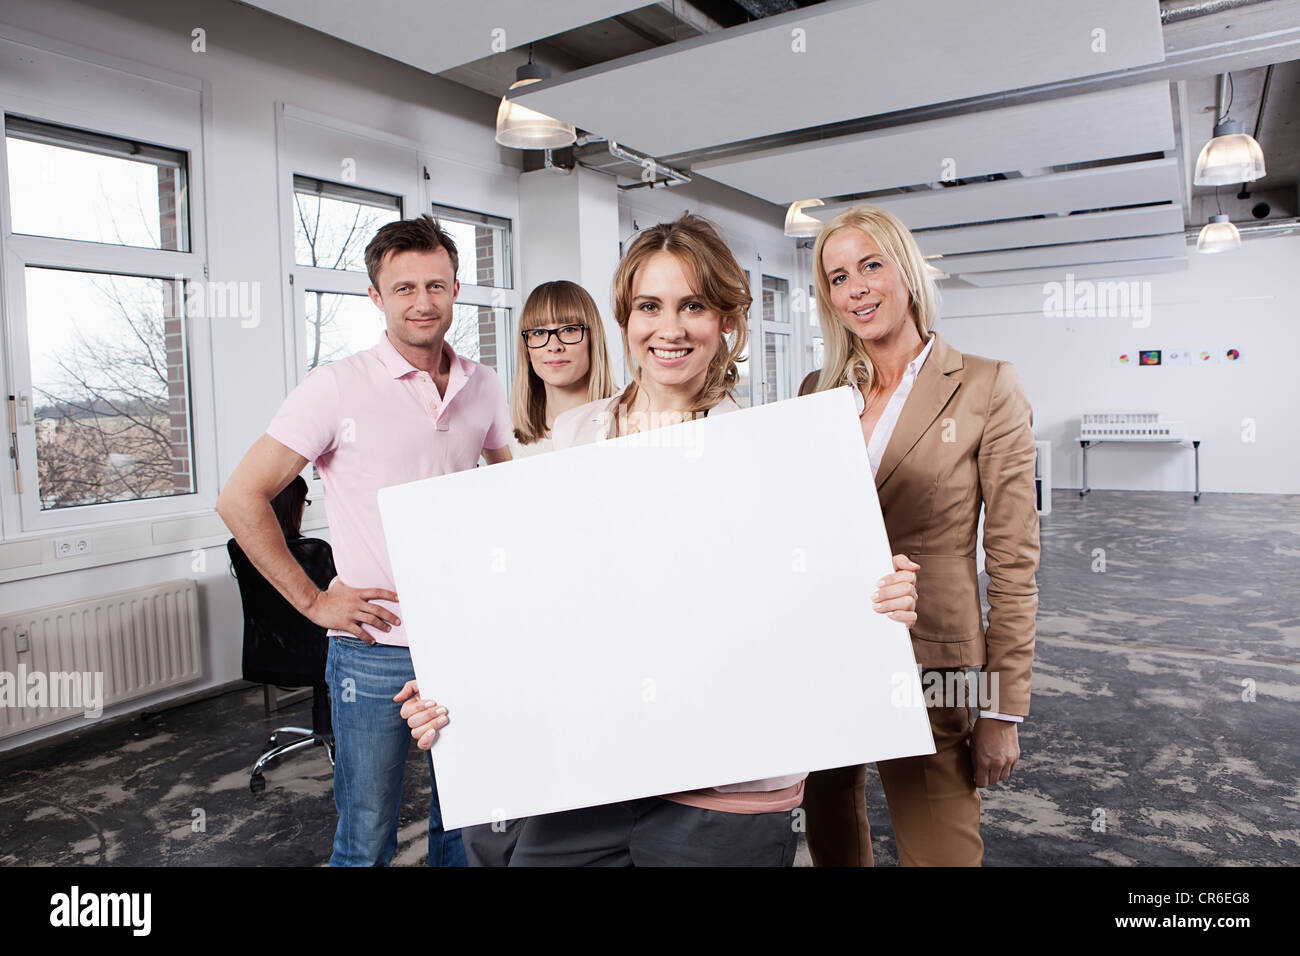 Germany, Bavaria, Munich, Young woman holding placard with colleagues in office - Stock Image